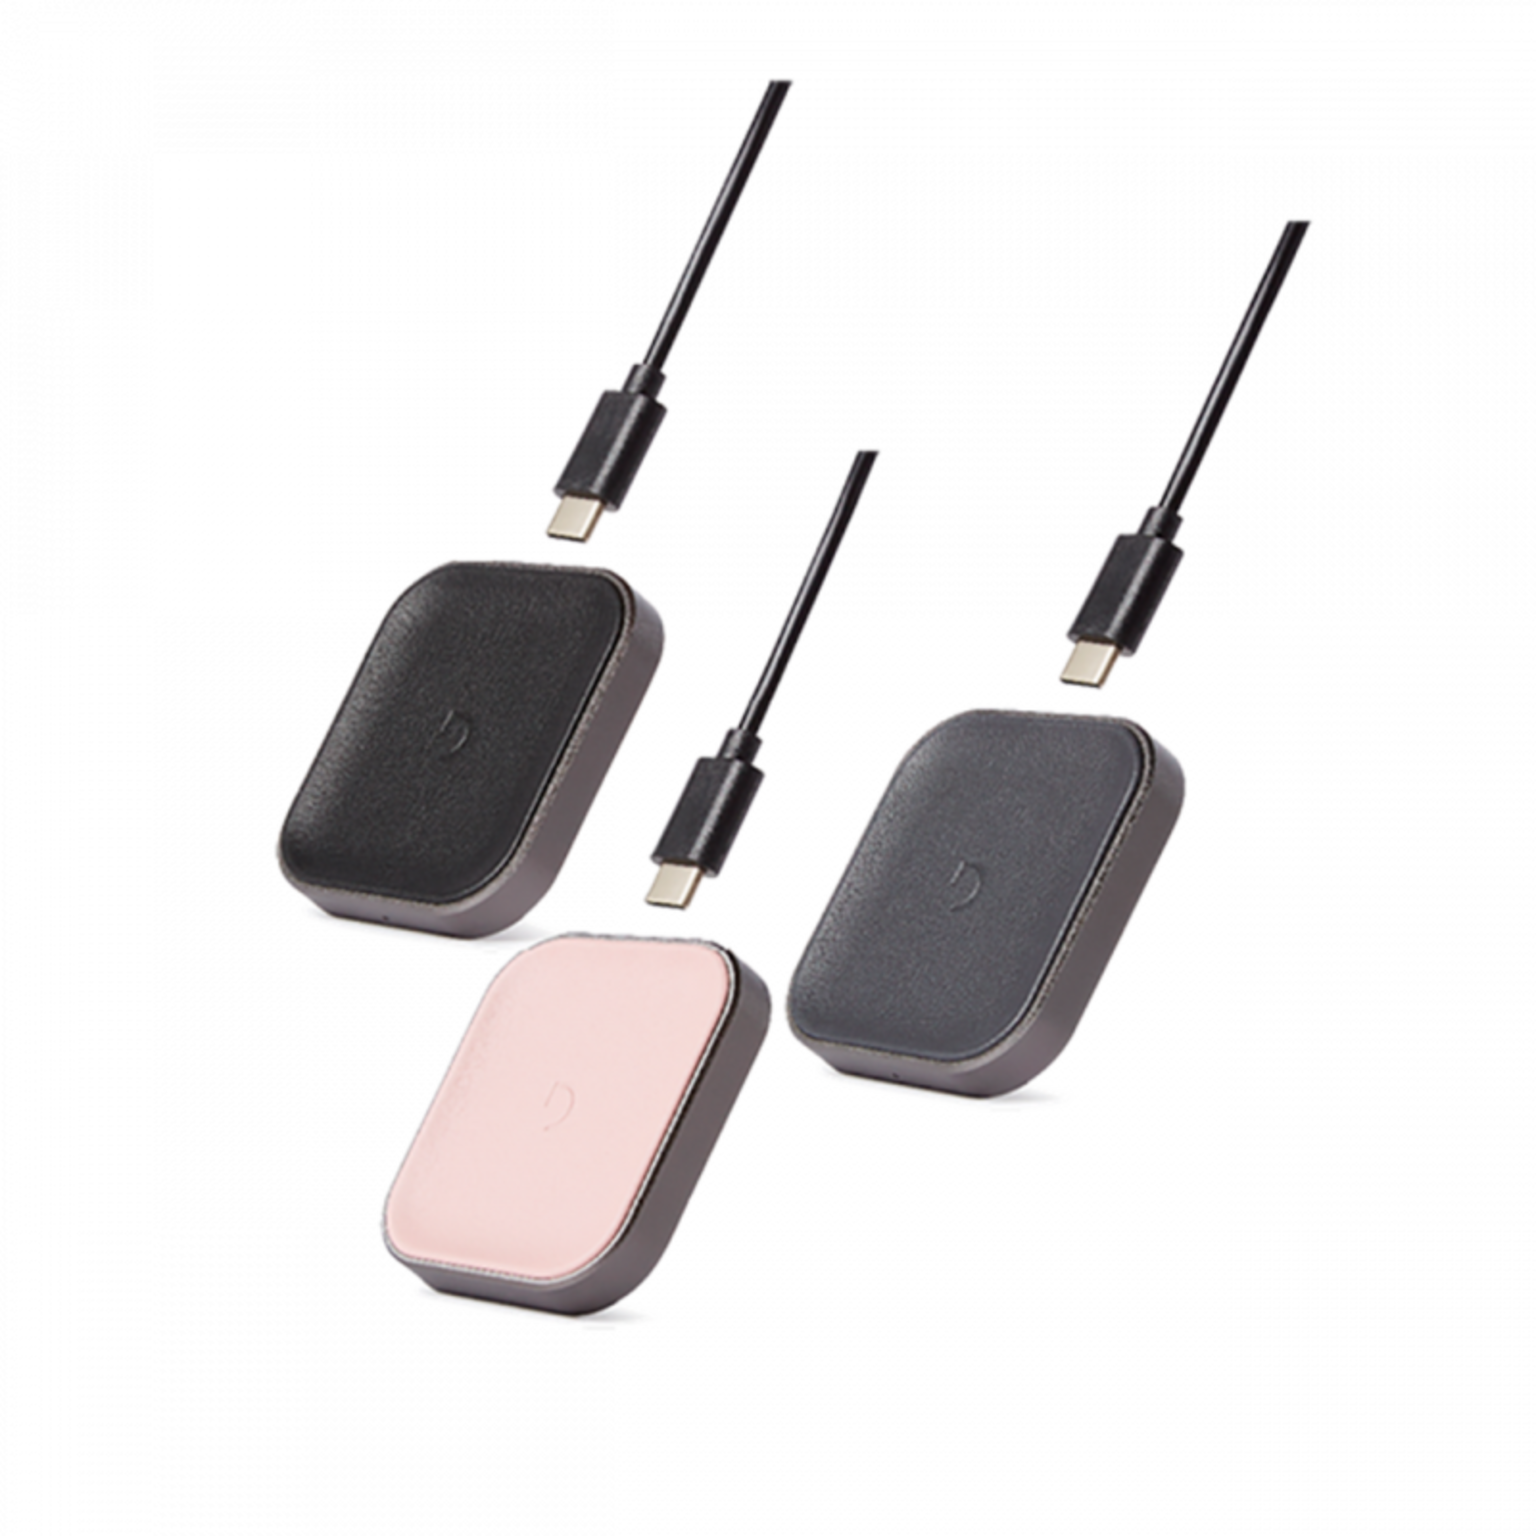 Decoded Leather charger